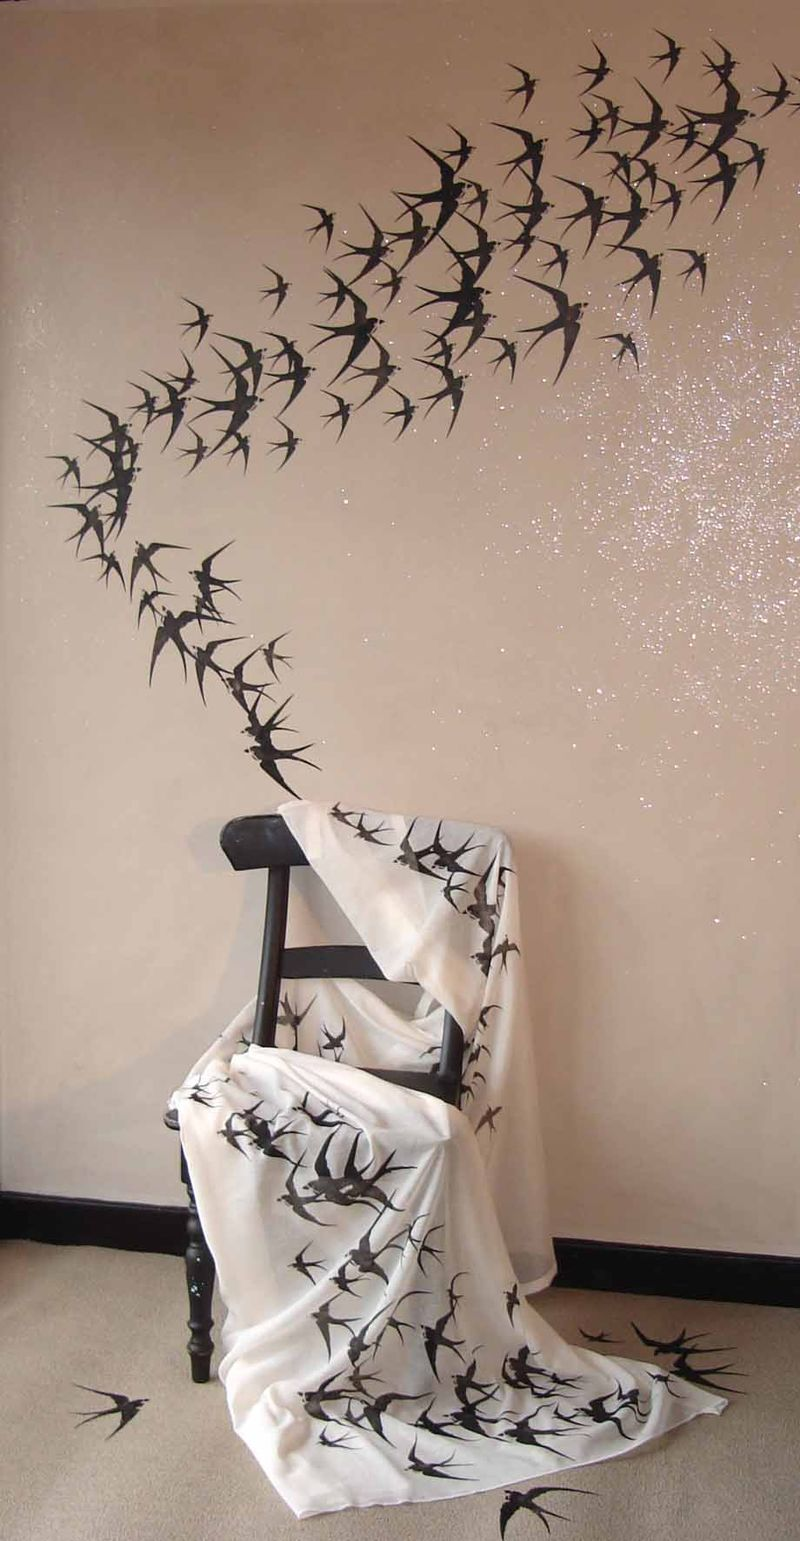 Swallow stencil from Stencil-Library 130